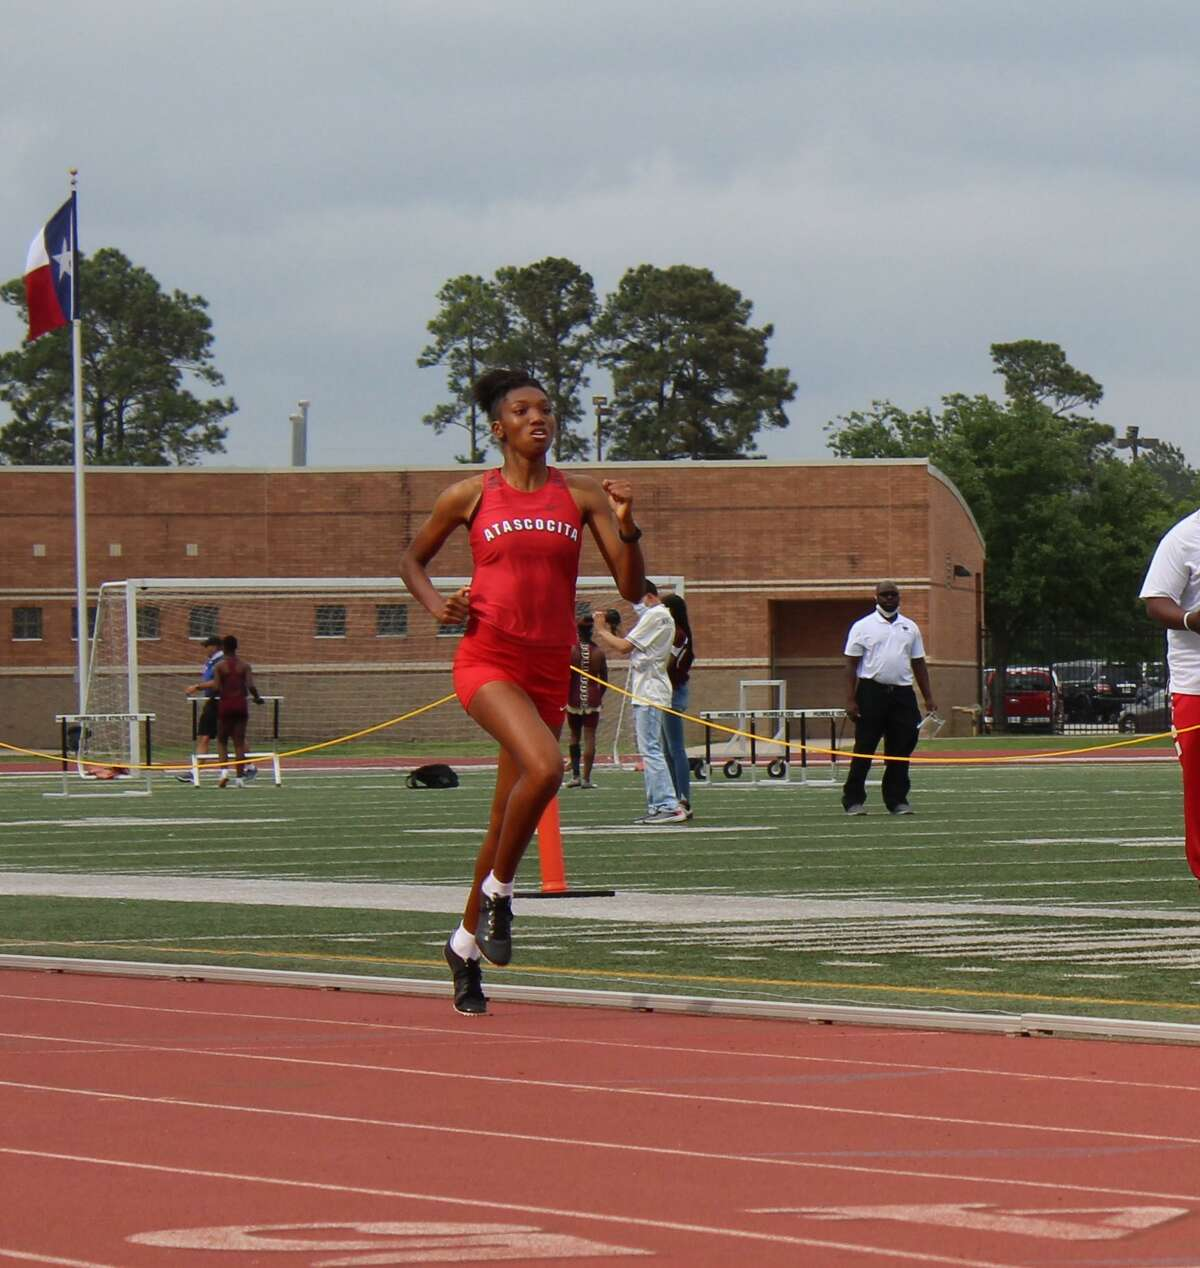 Atascocita's Arayna Mickles finishes in first place in the 800 meter run at the District 21-6A meet Friday afternoon at Turner Stadium.